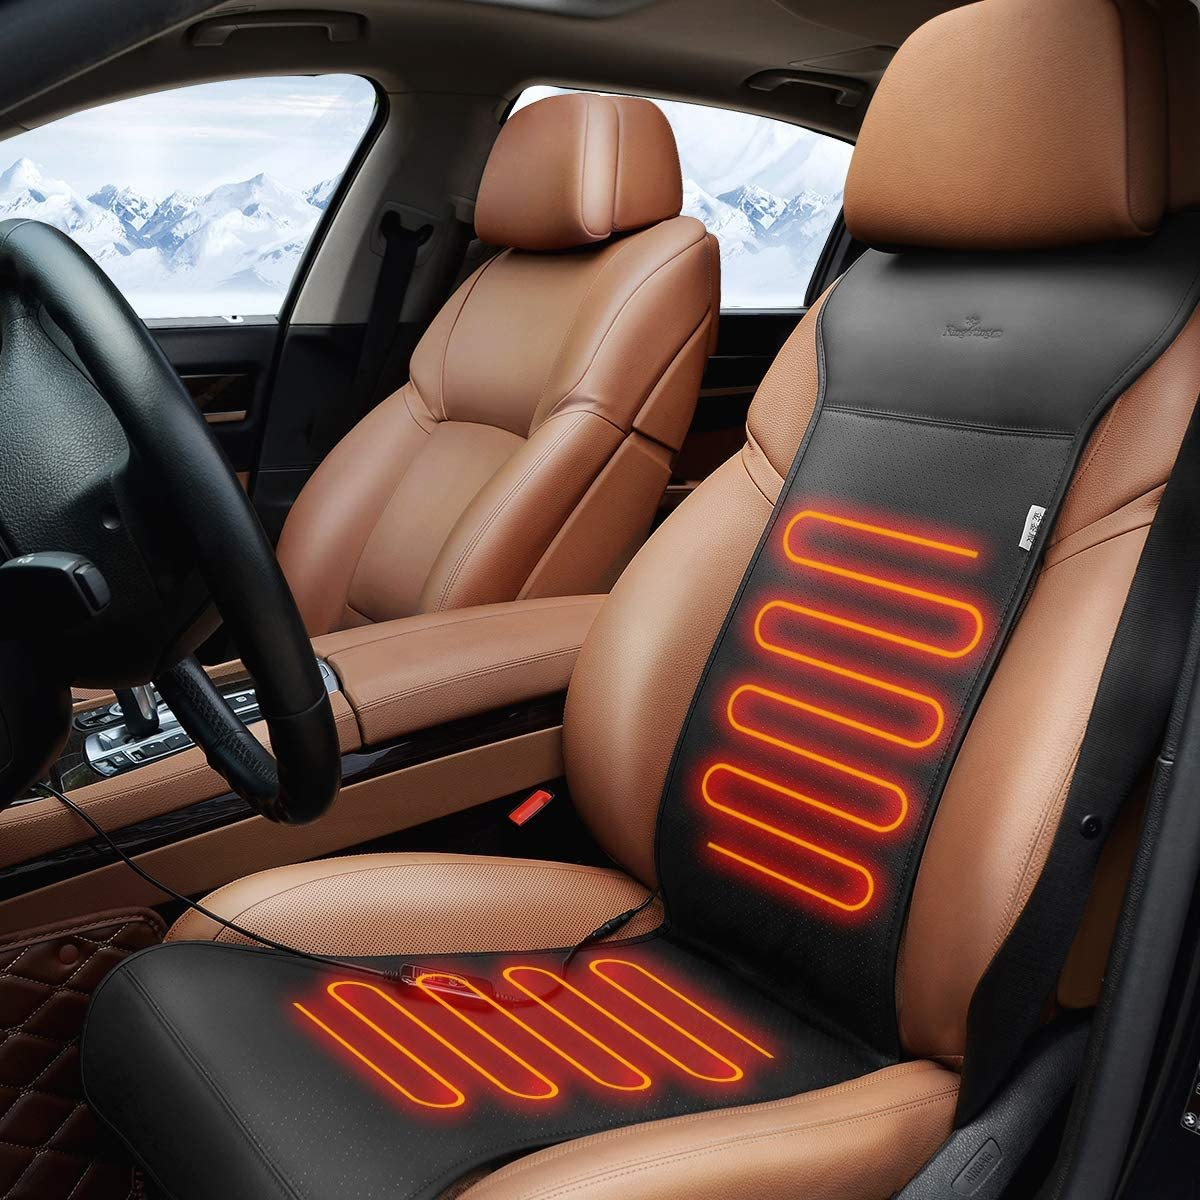 KINGLETING Heated Seat Cushion with Intelligent Temperature Controller